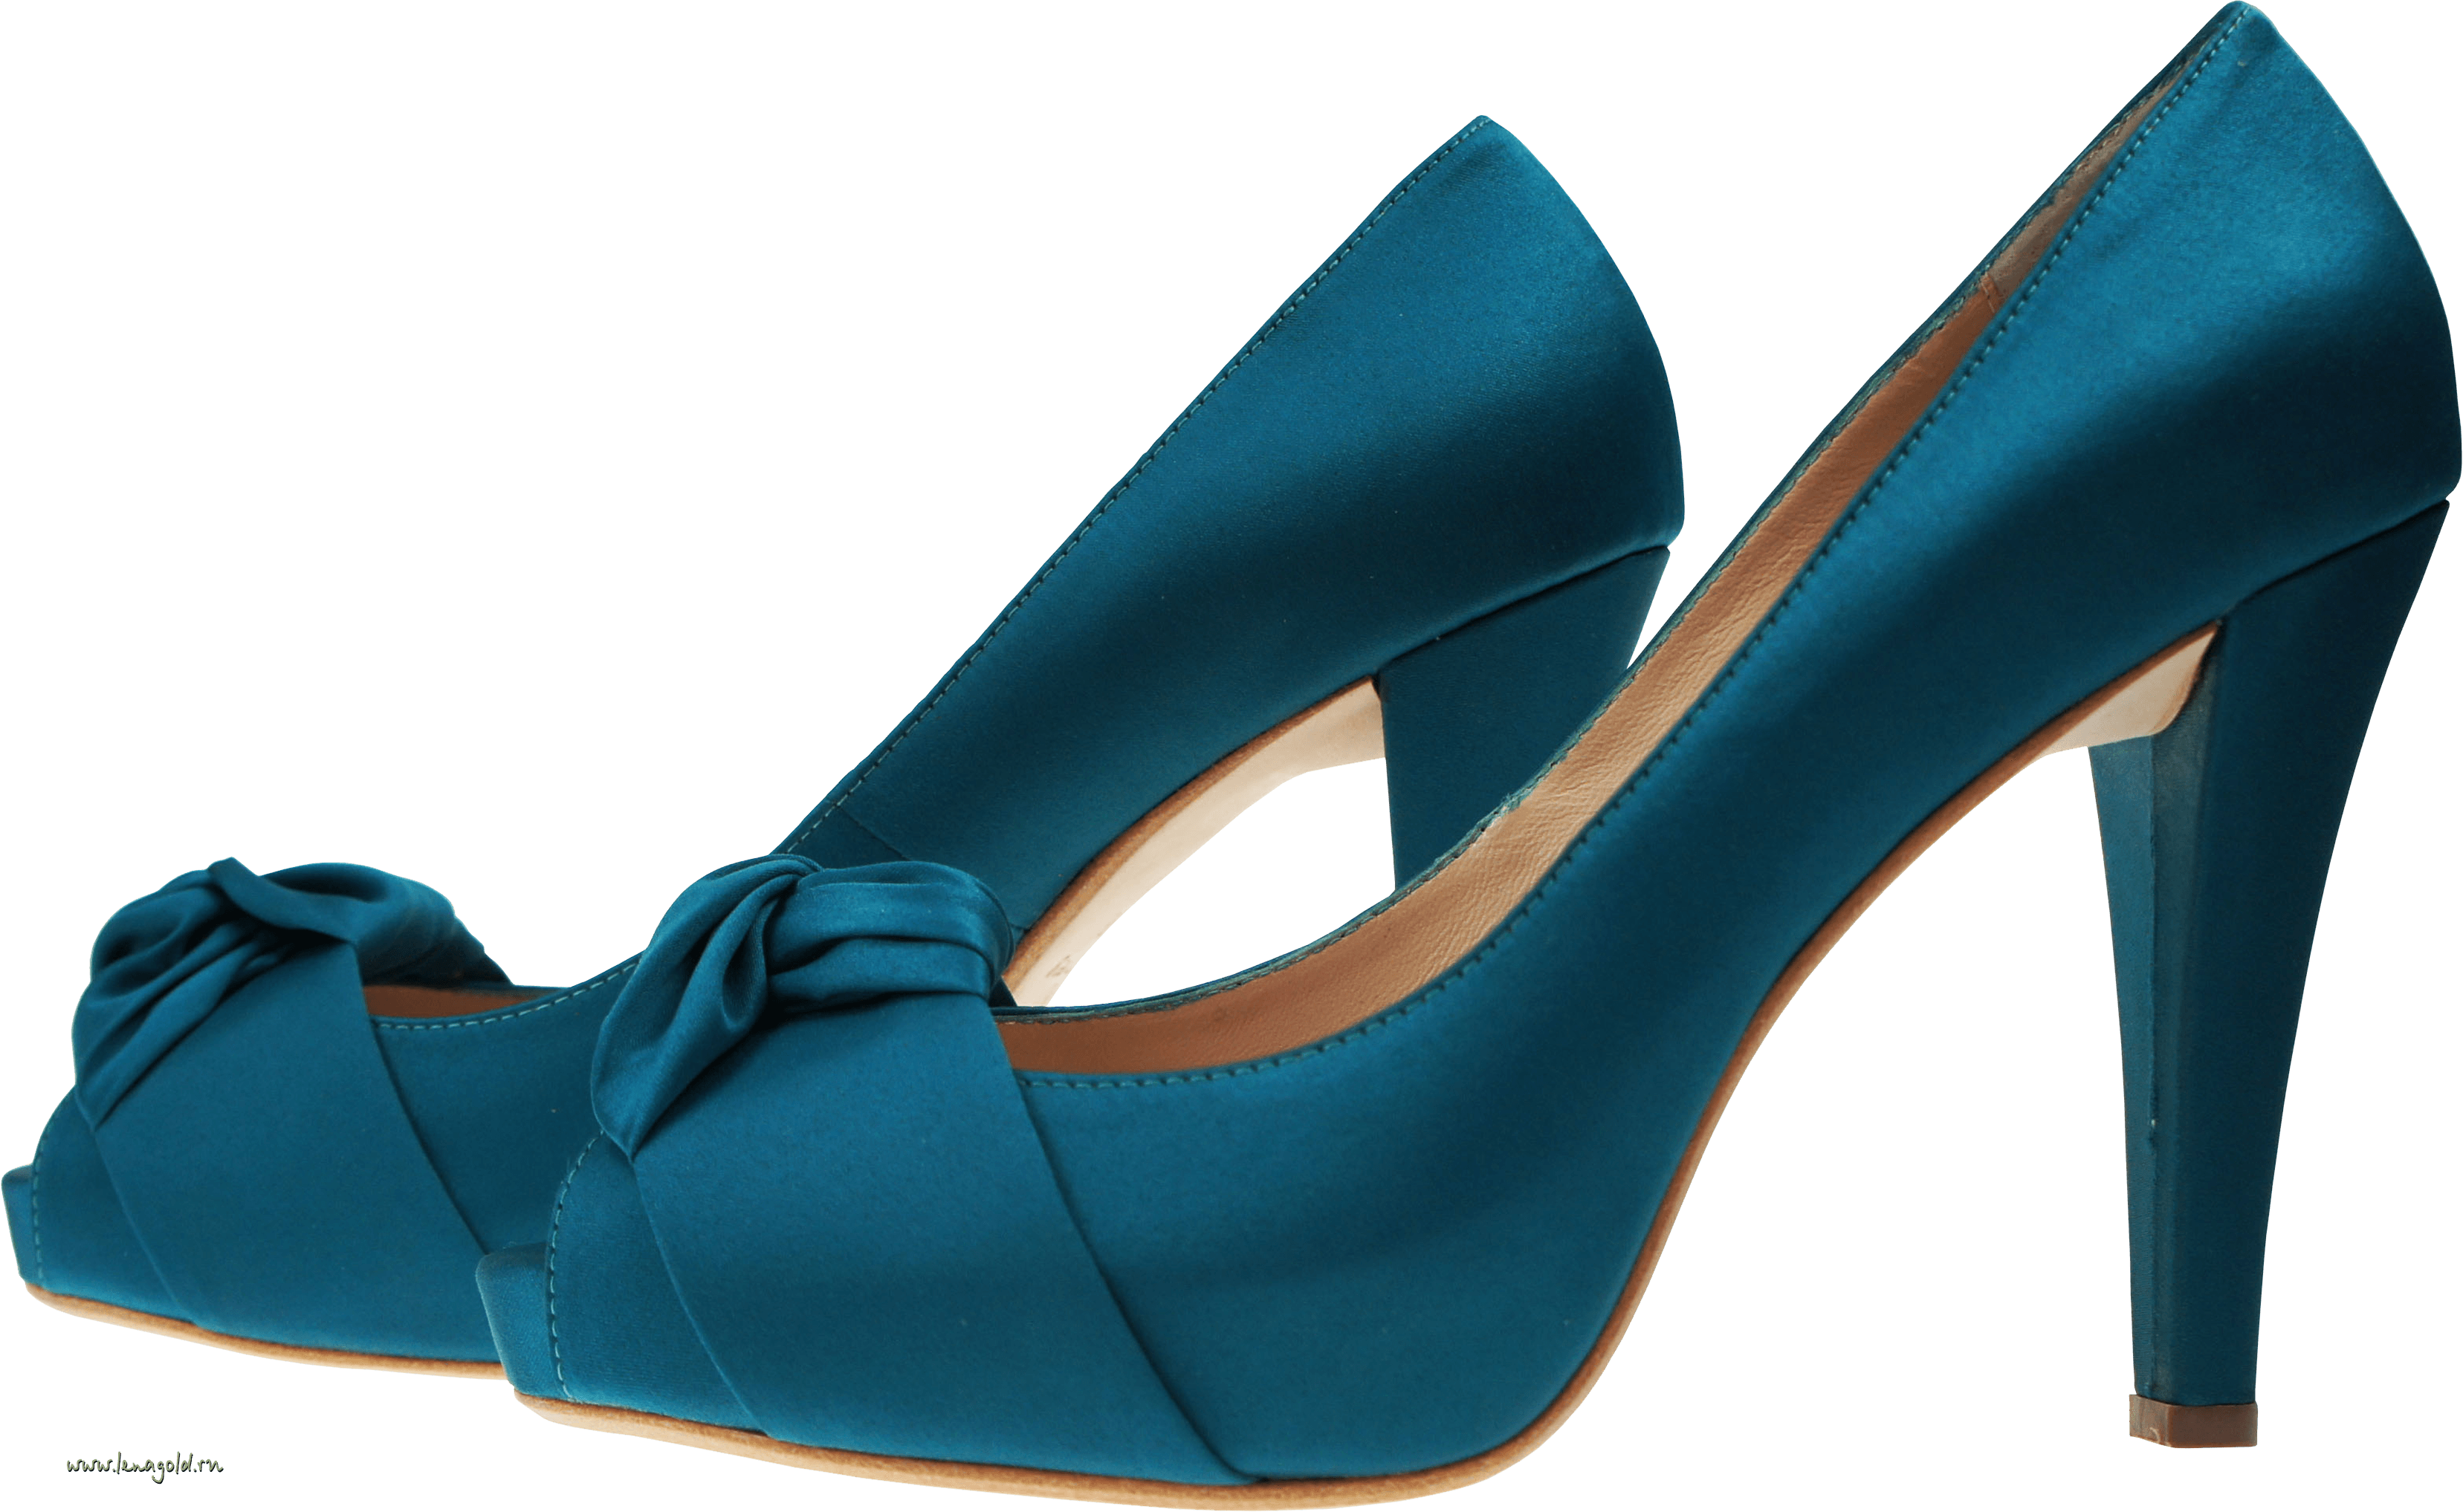 Blue Women Shoes Png Image PNG Image